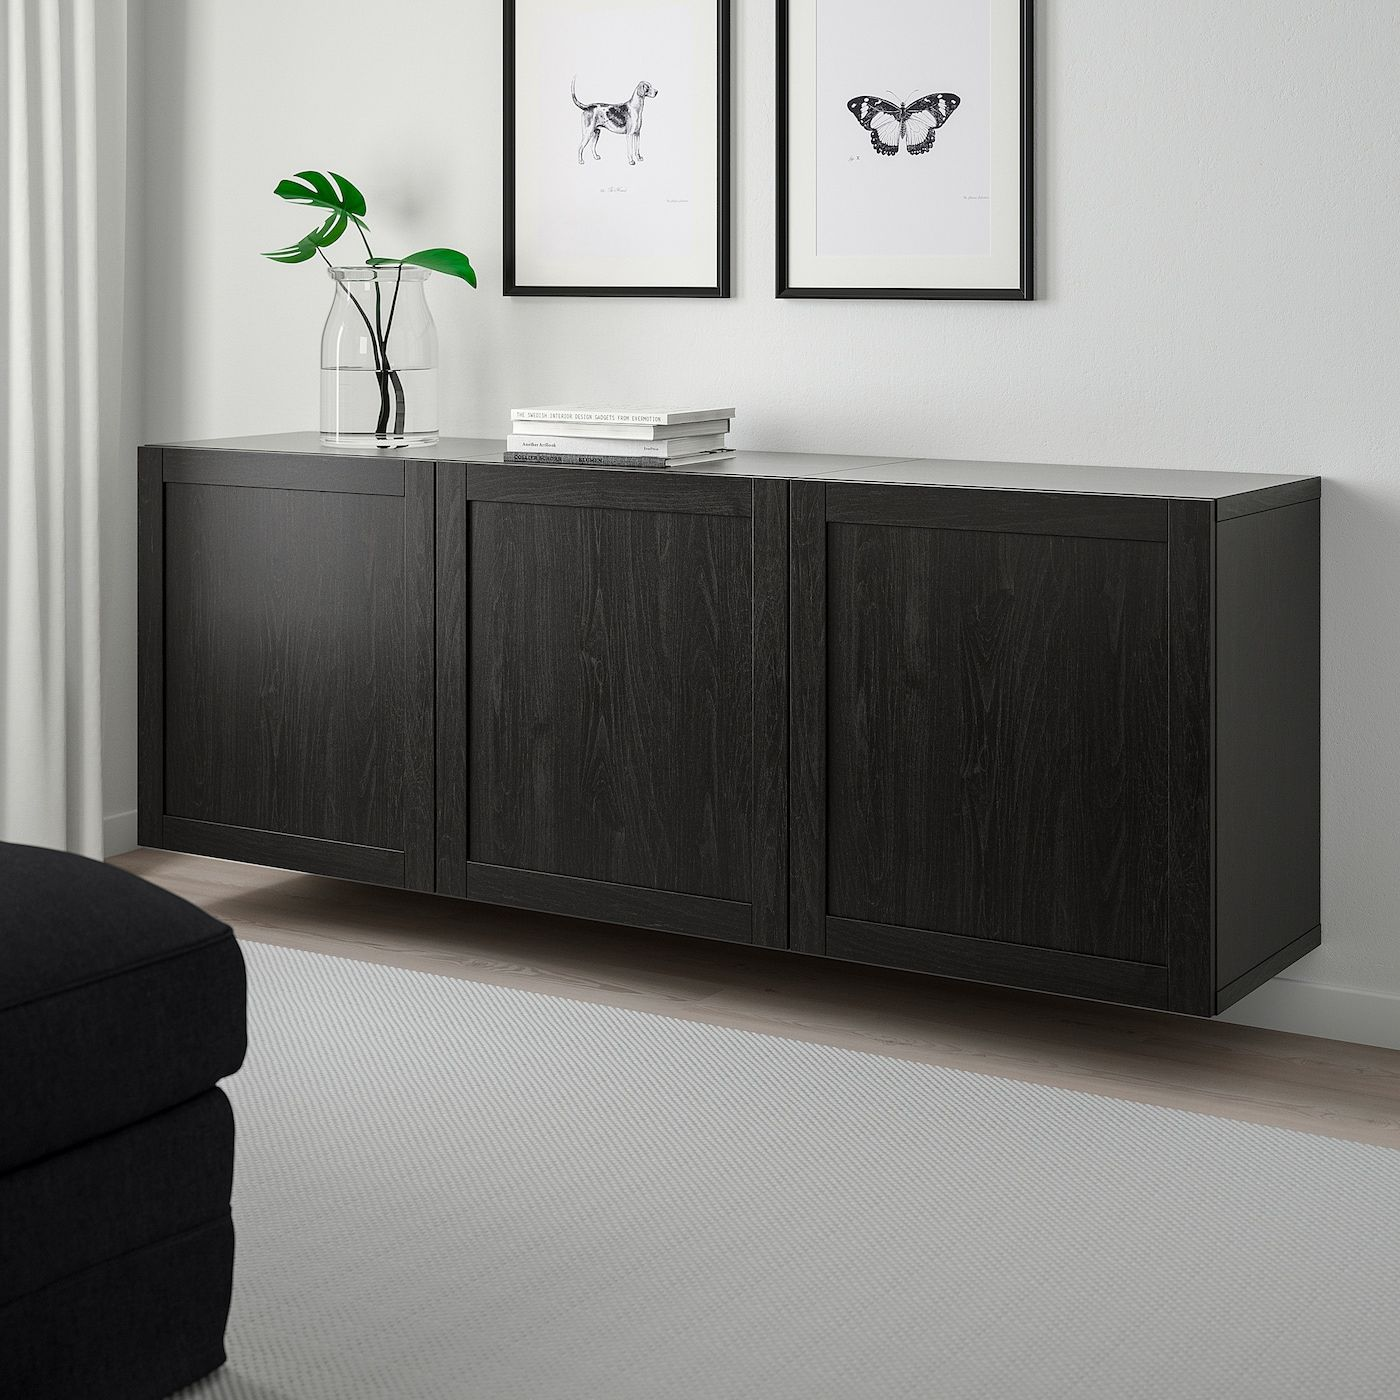 Besta Wall Mounted Cabinet Combination Black Brown Hanviken